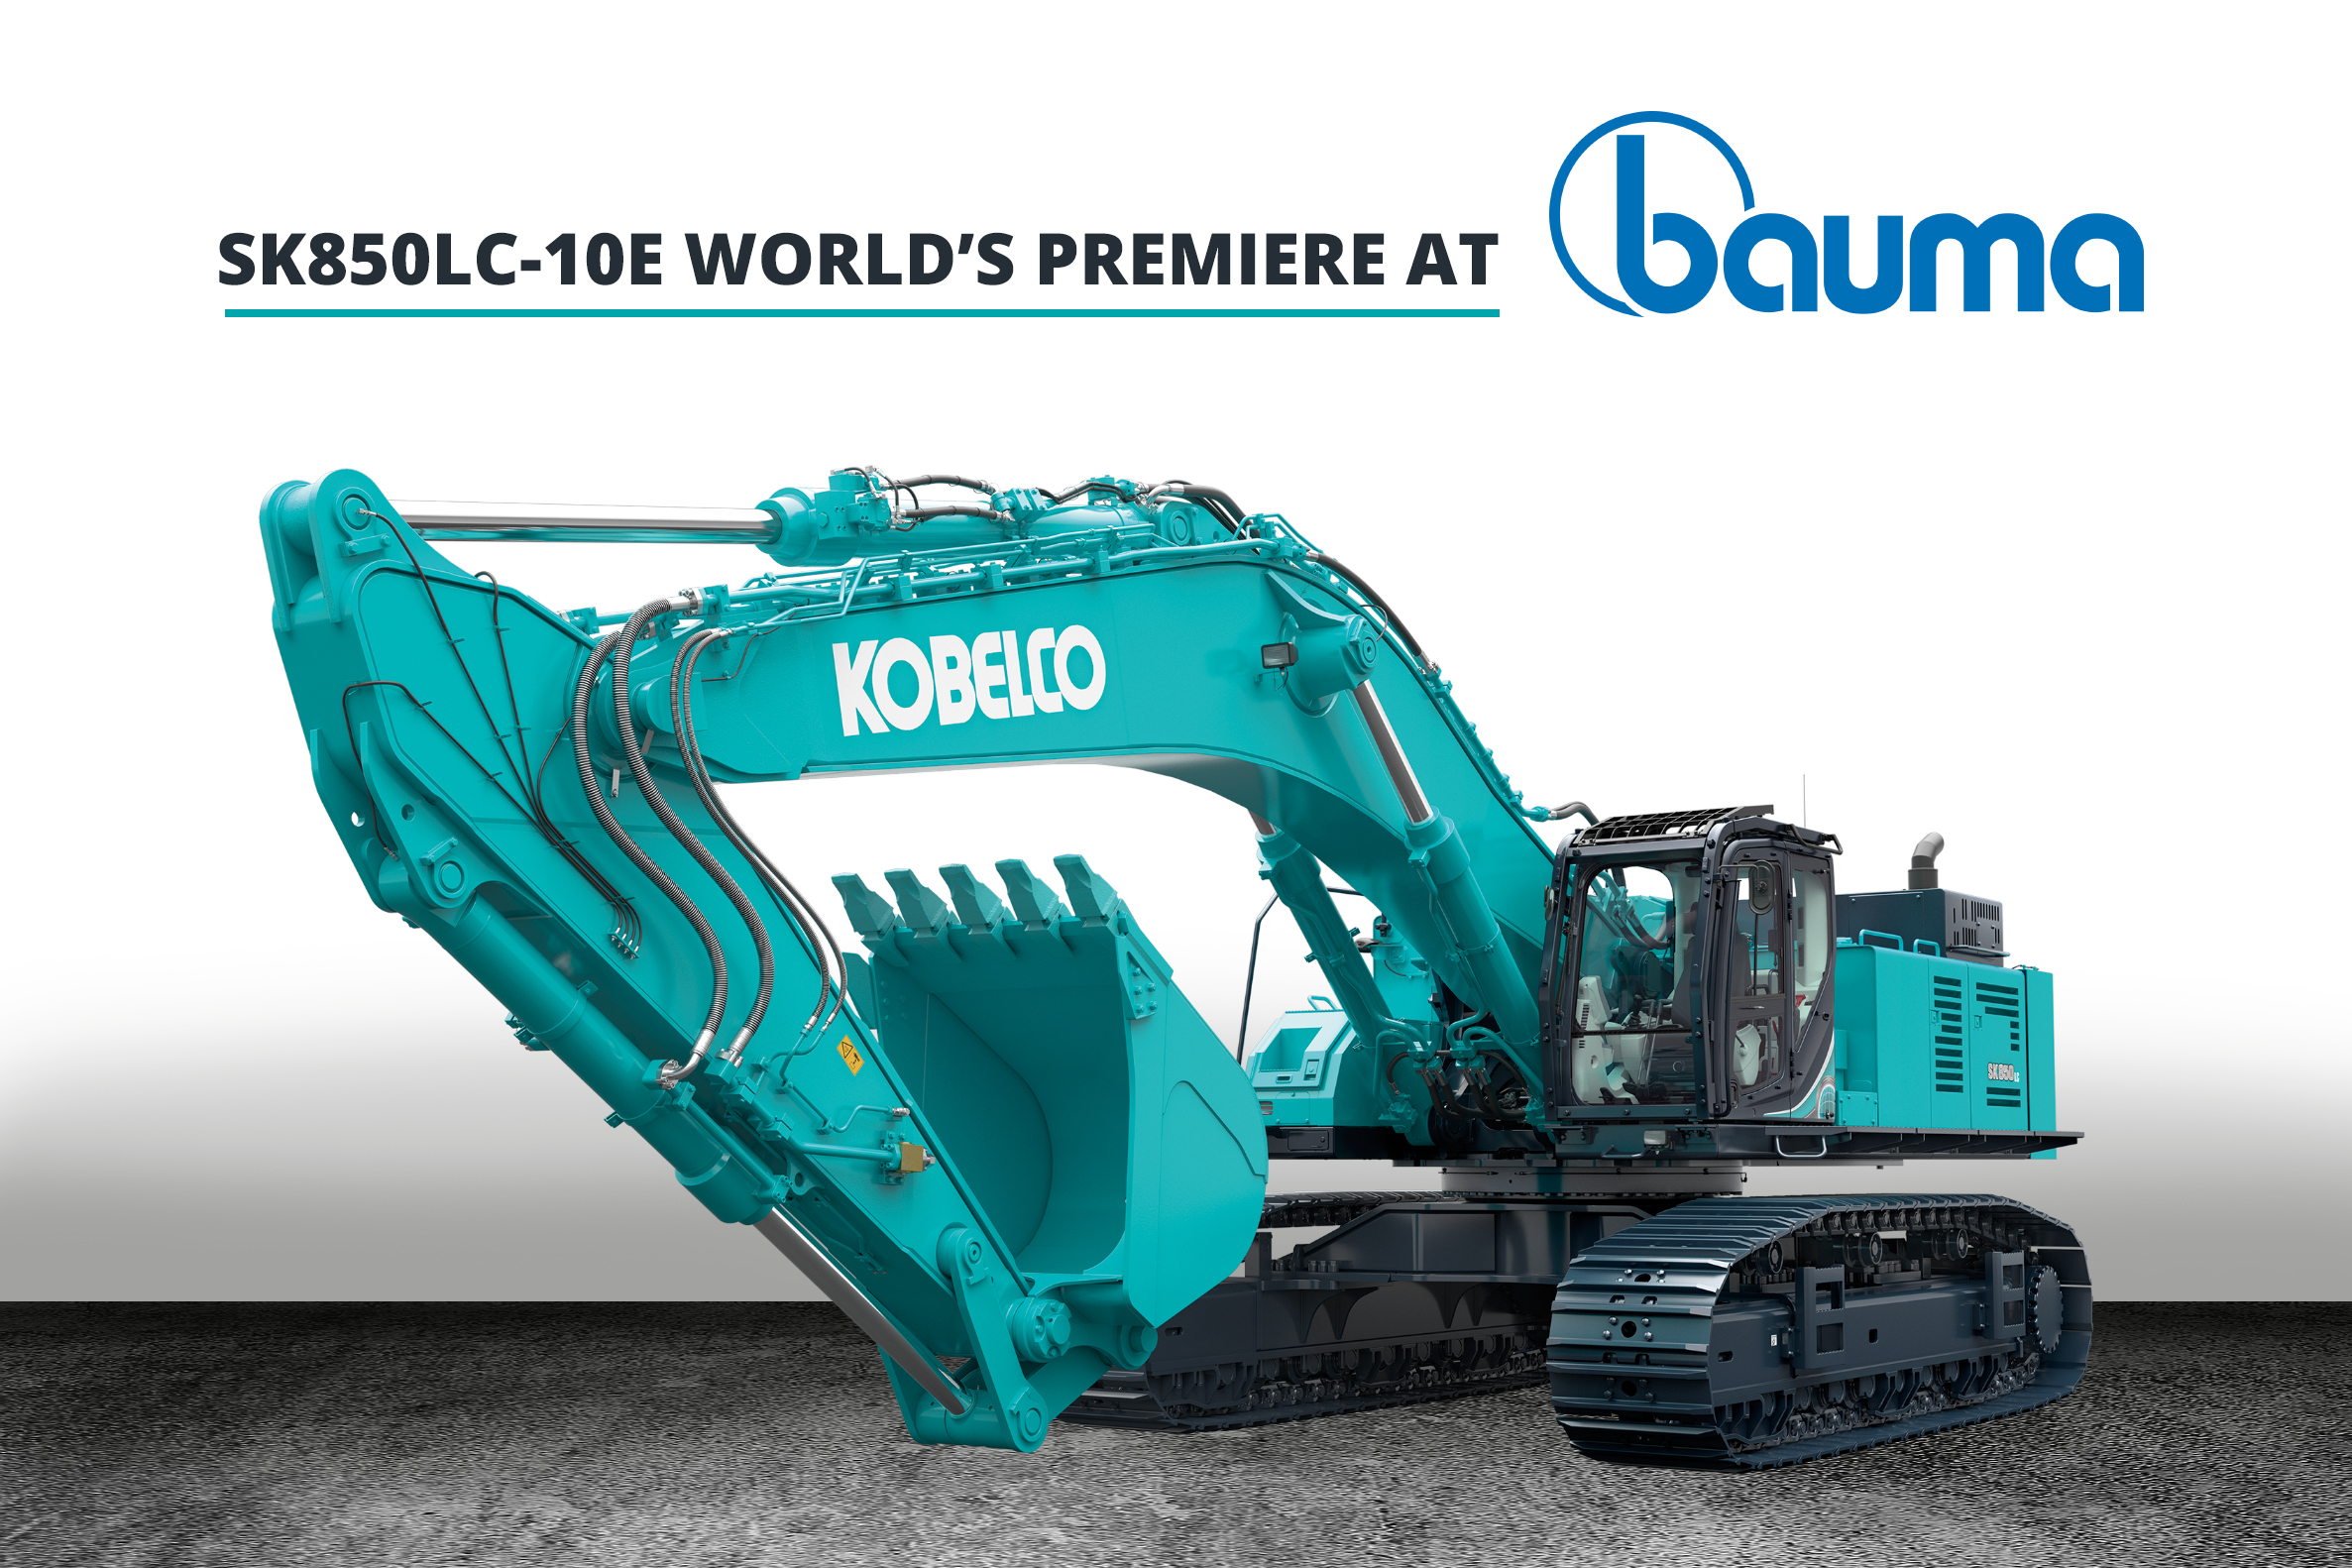 SK850LC-10E - Kobelco to launch its largest excavator in Europe